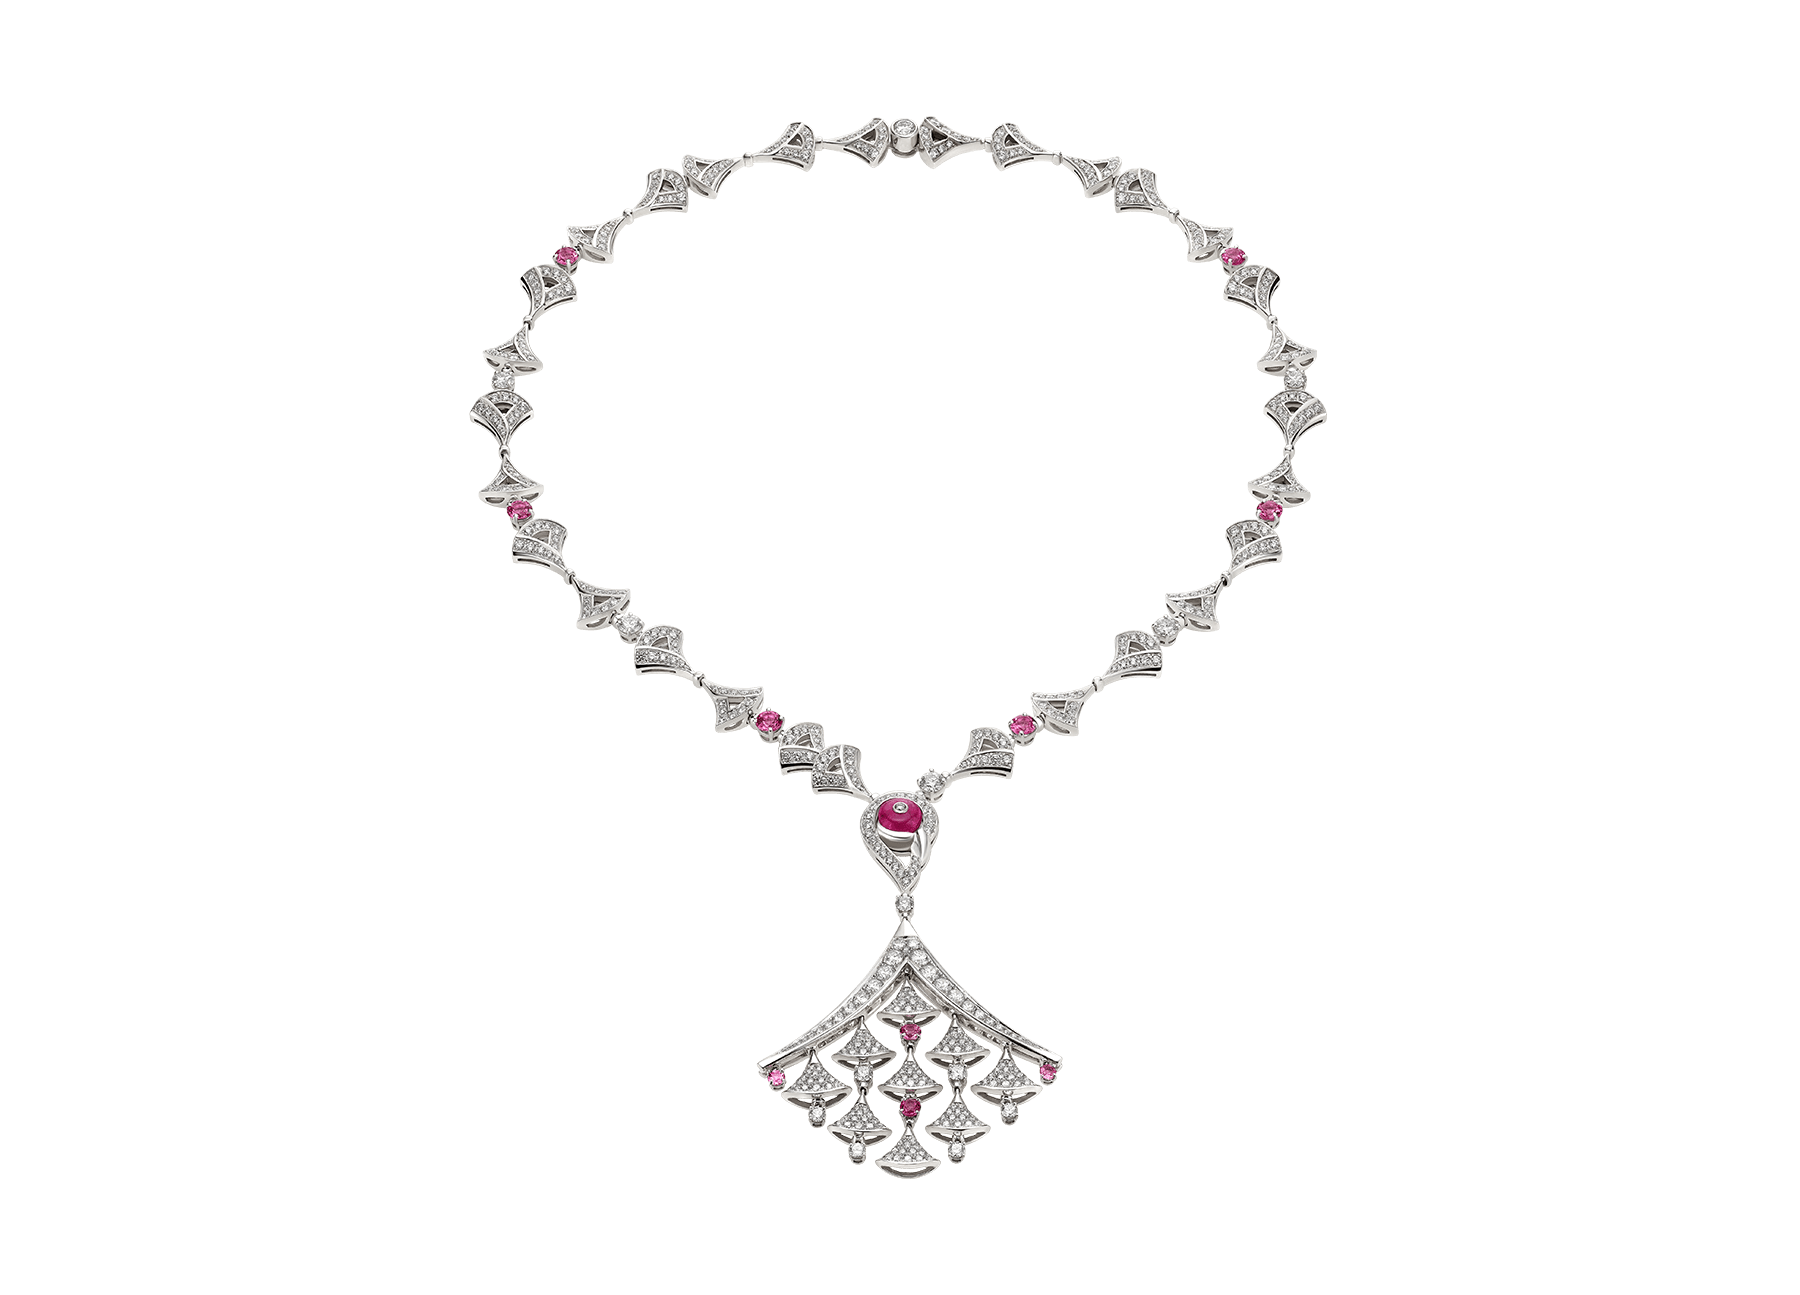 DIVAS' DREAM necklace in 18 kt white gold, set with pavé diamonds and pink rubellite. 354080 image 1